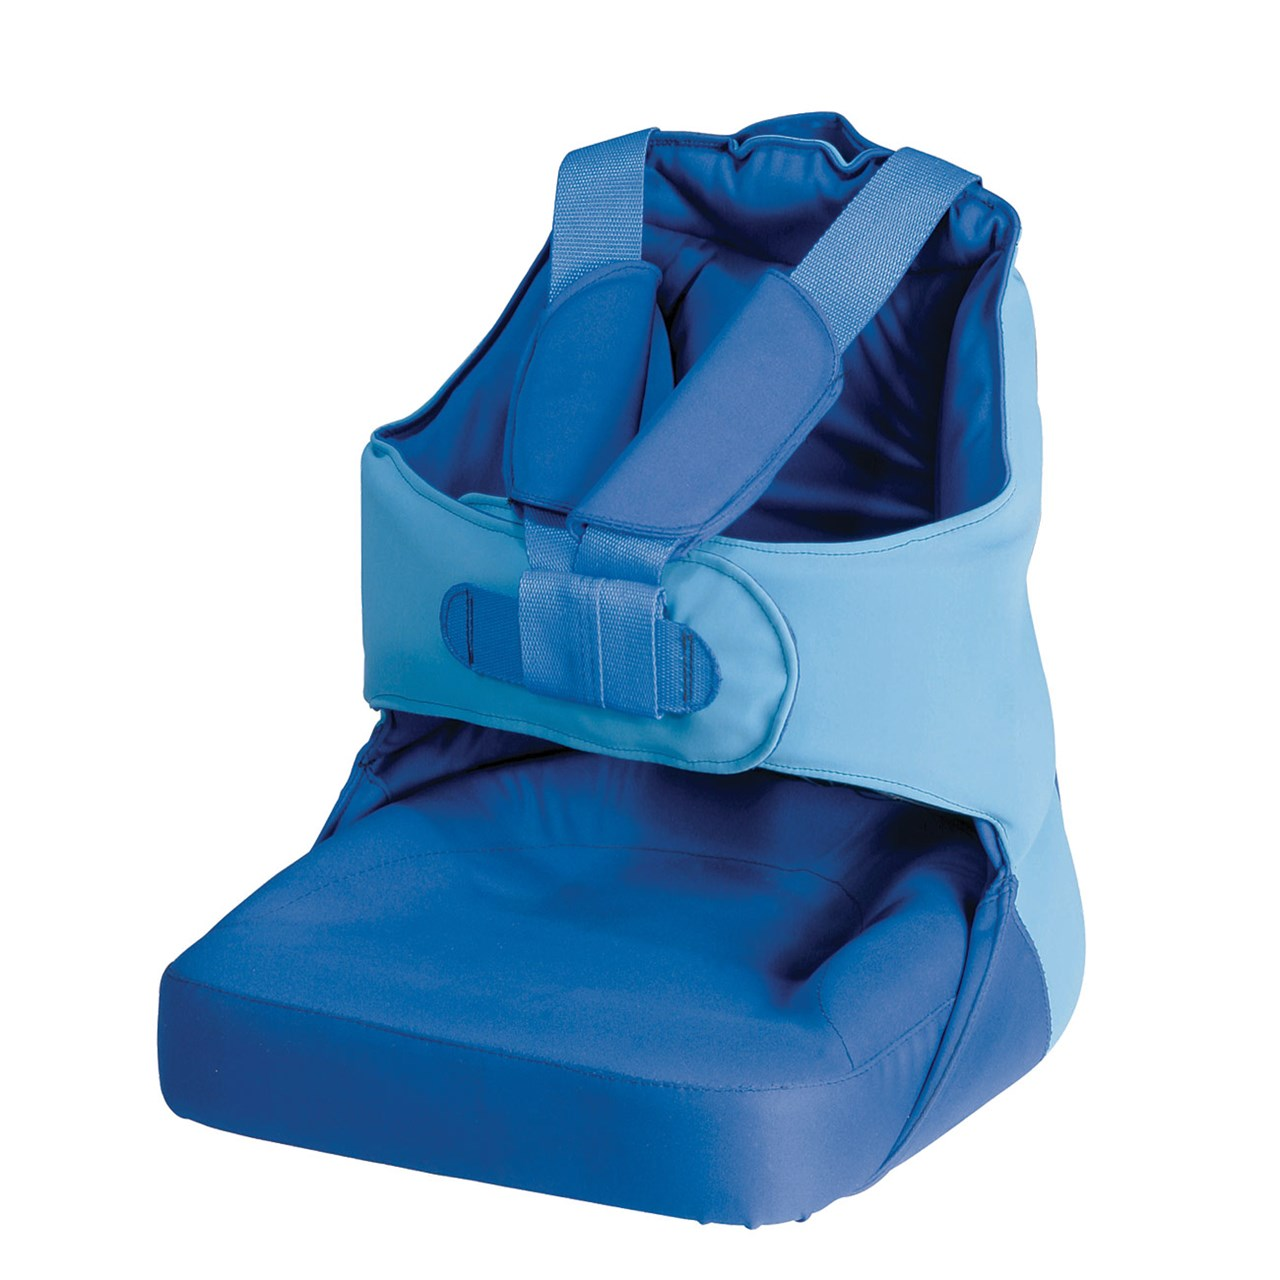 Amazing Seat2Go Positioning Seat Medium Caraccident5 Cool Chair Designs And Ideas Caraccident5Info